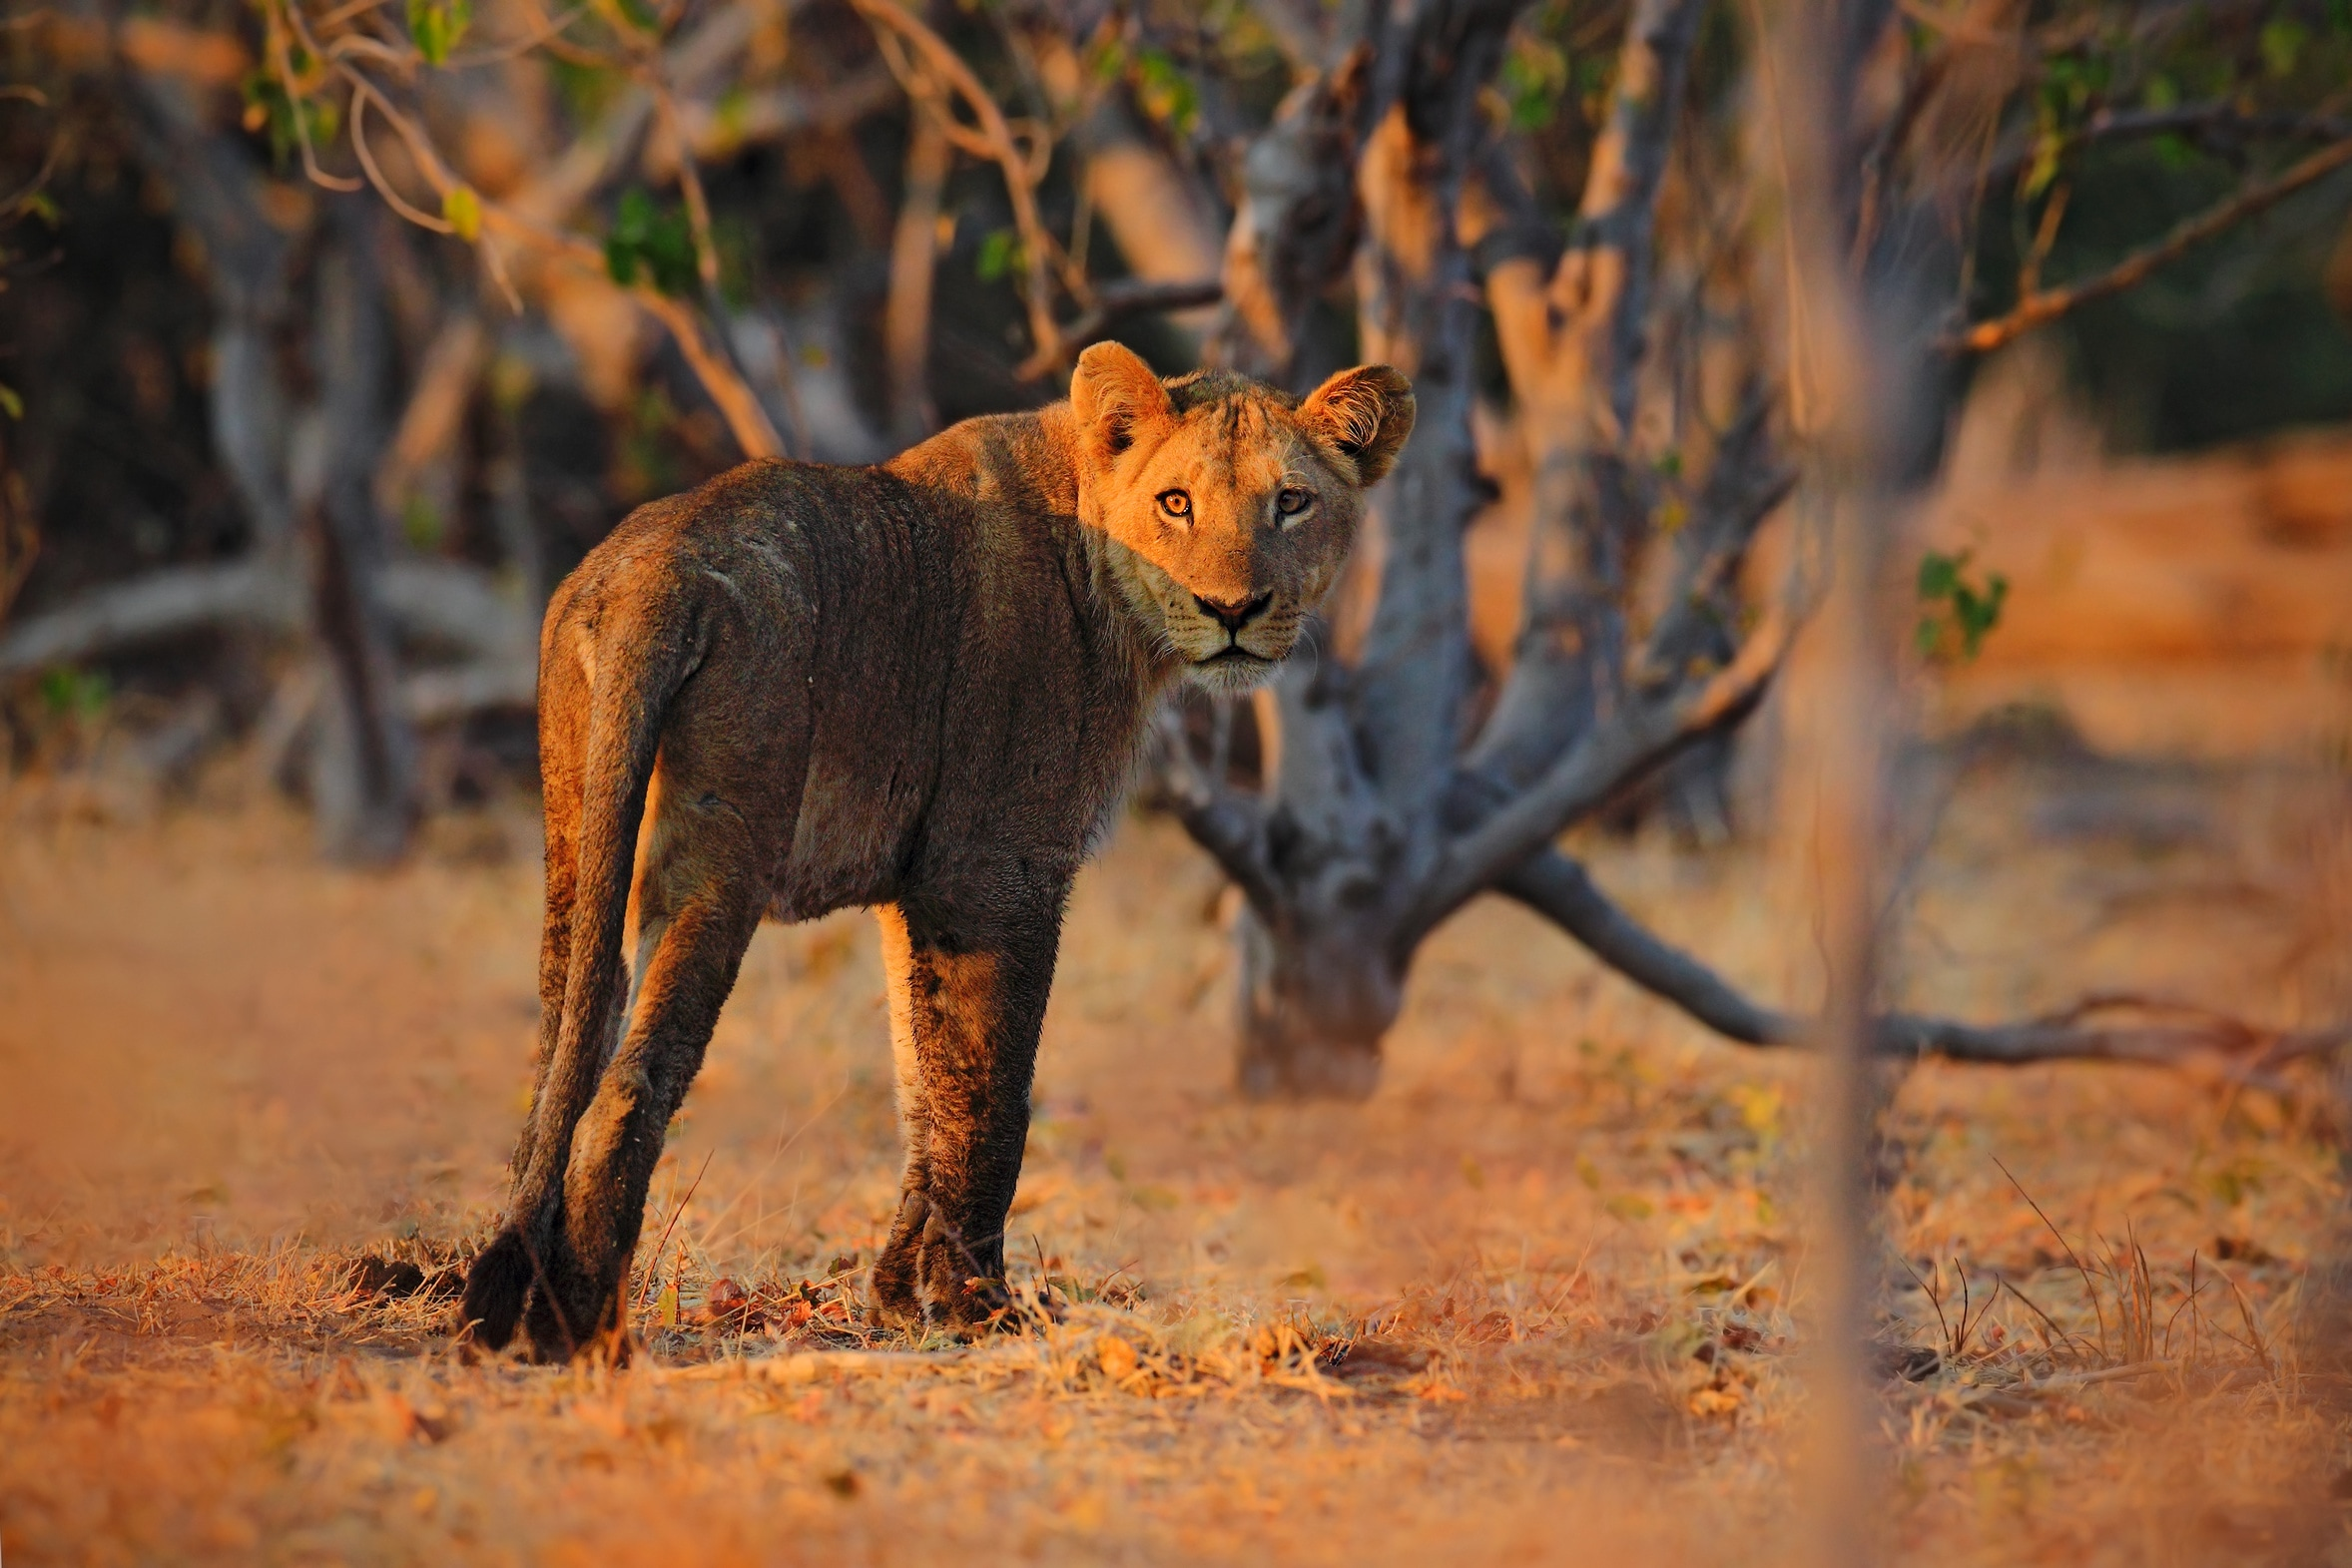 A lioness in the Kruger National Park